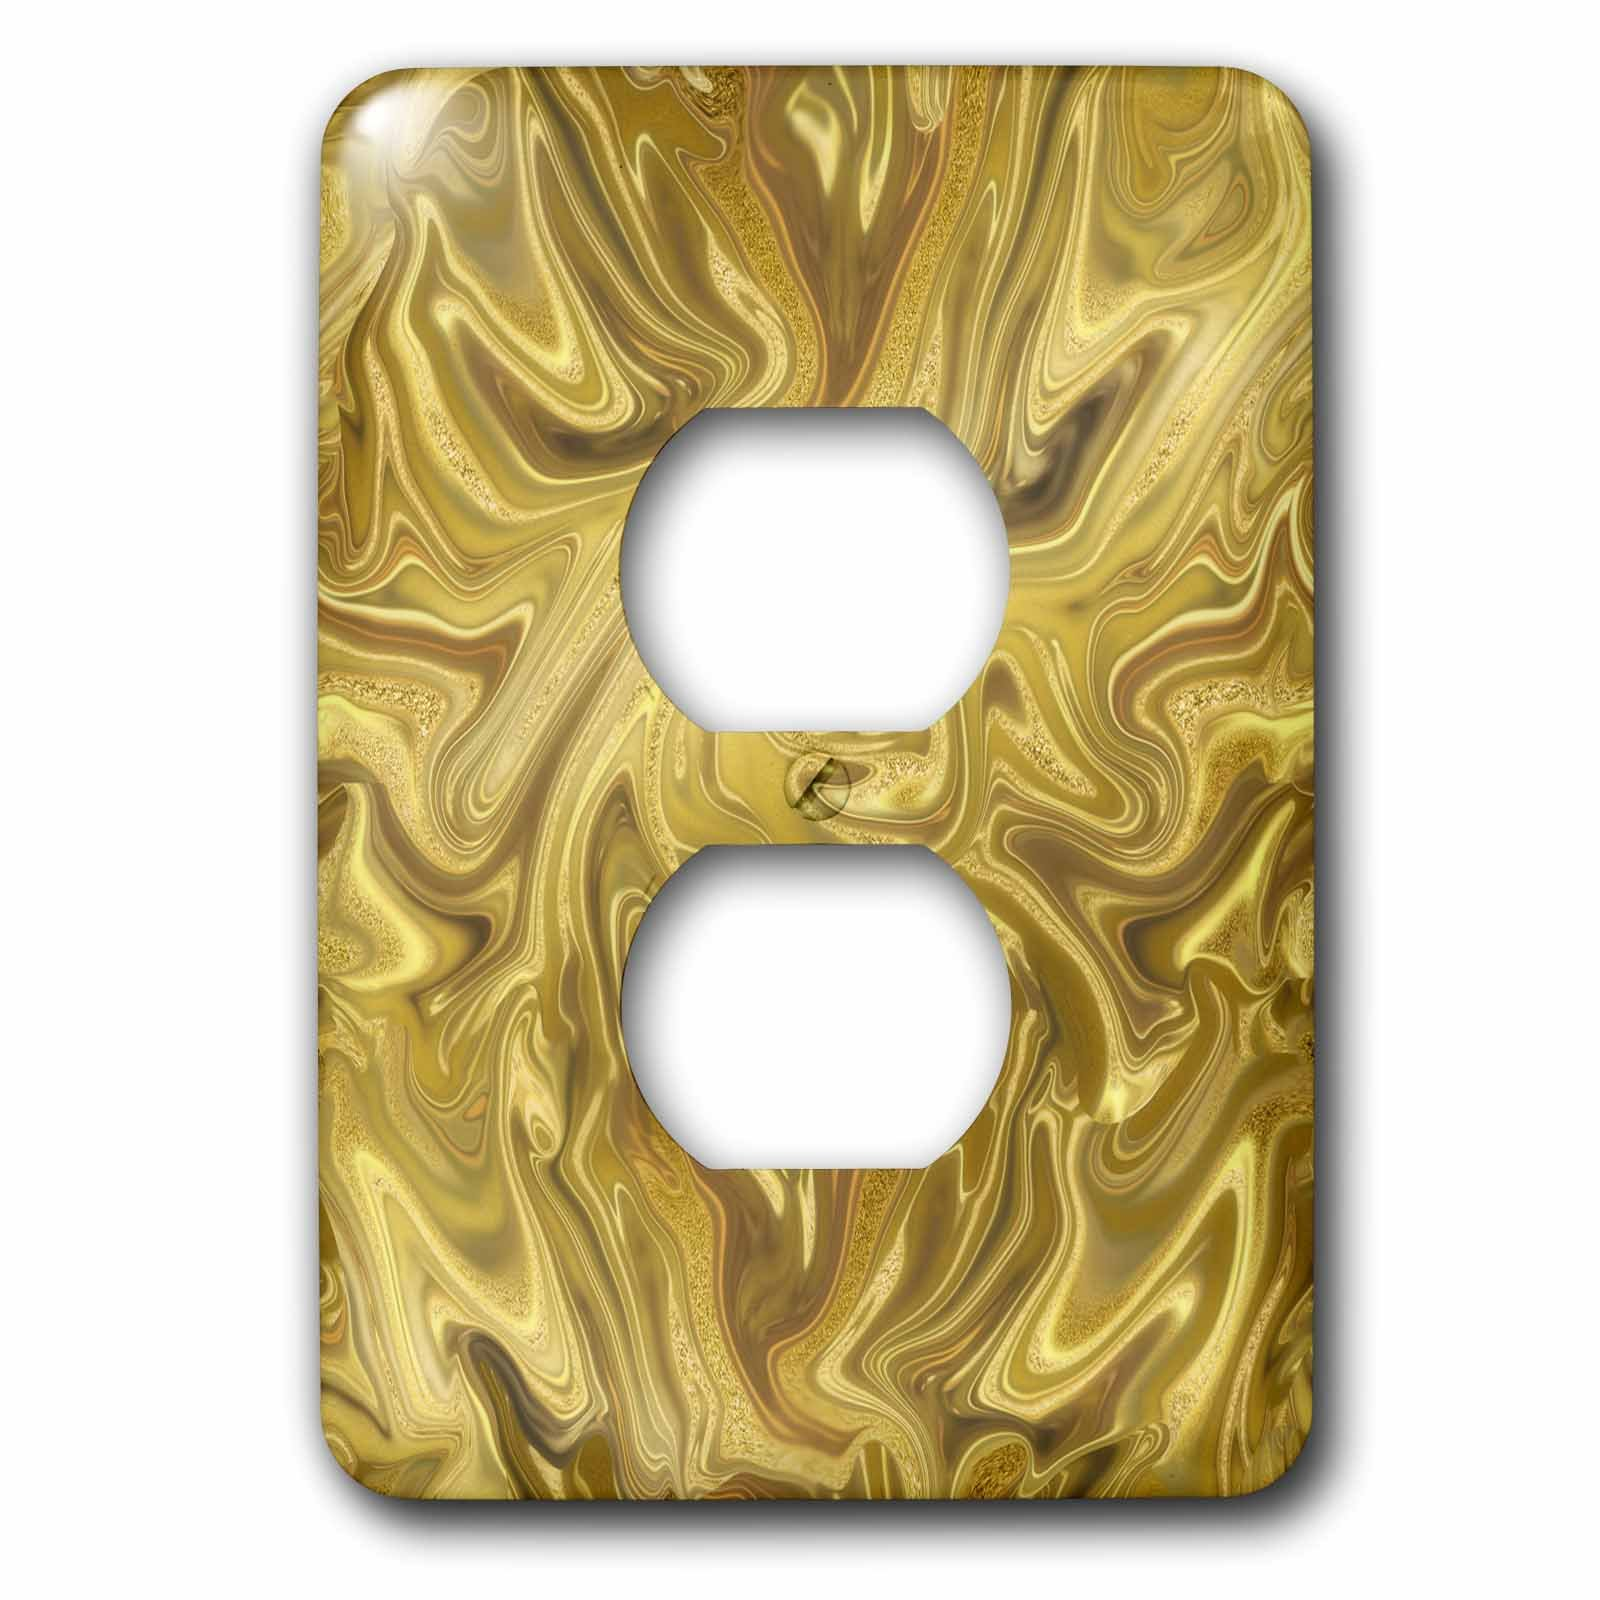 3dRose Andrea Haase Art Illustration - Liquid Gold And Glitter Luxury Surface - Light Switch Covers - 2 plug outlet cover (lsp_271140_6)